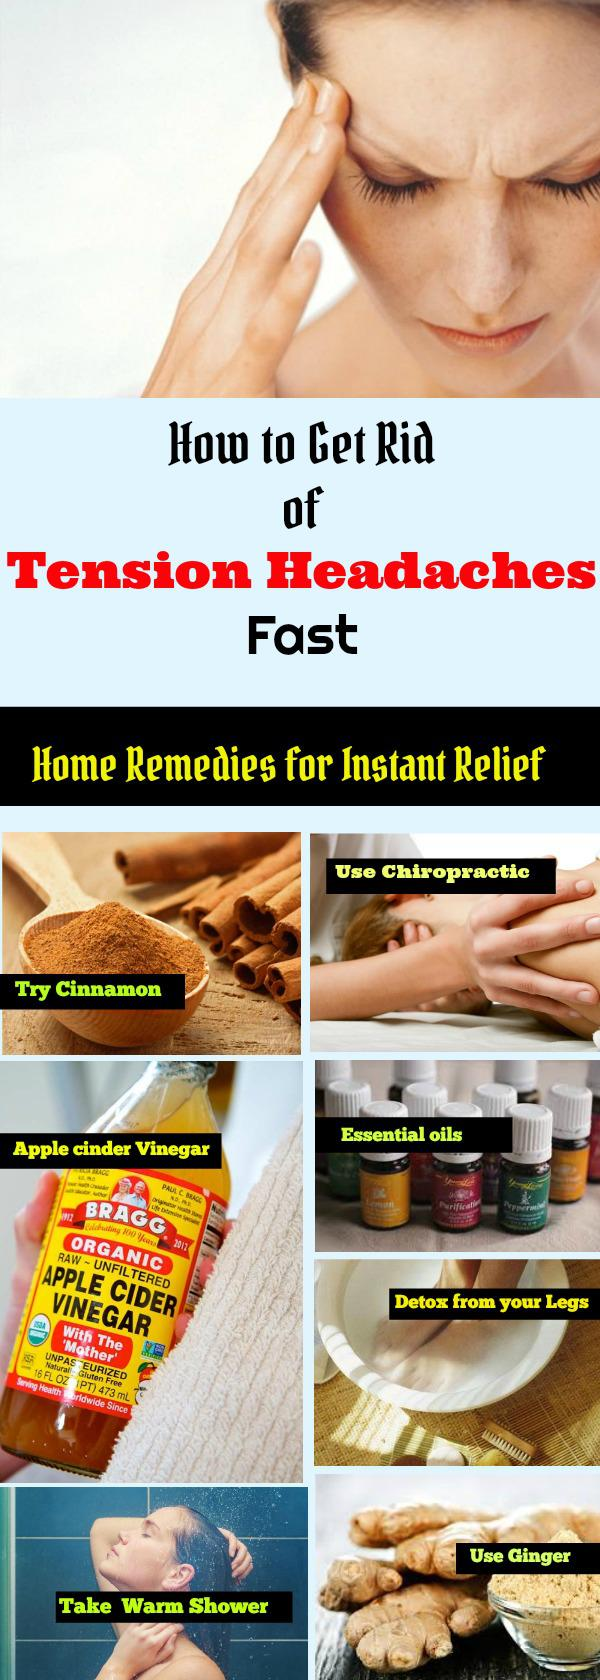 7 Best Tension Headache Remedies for Fast Relief